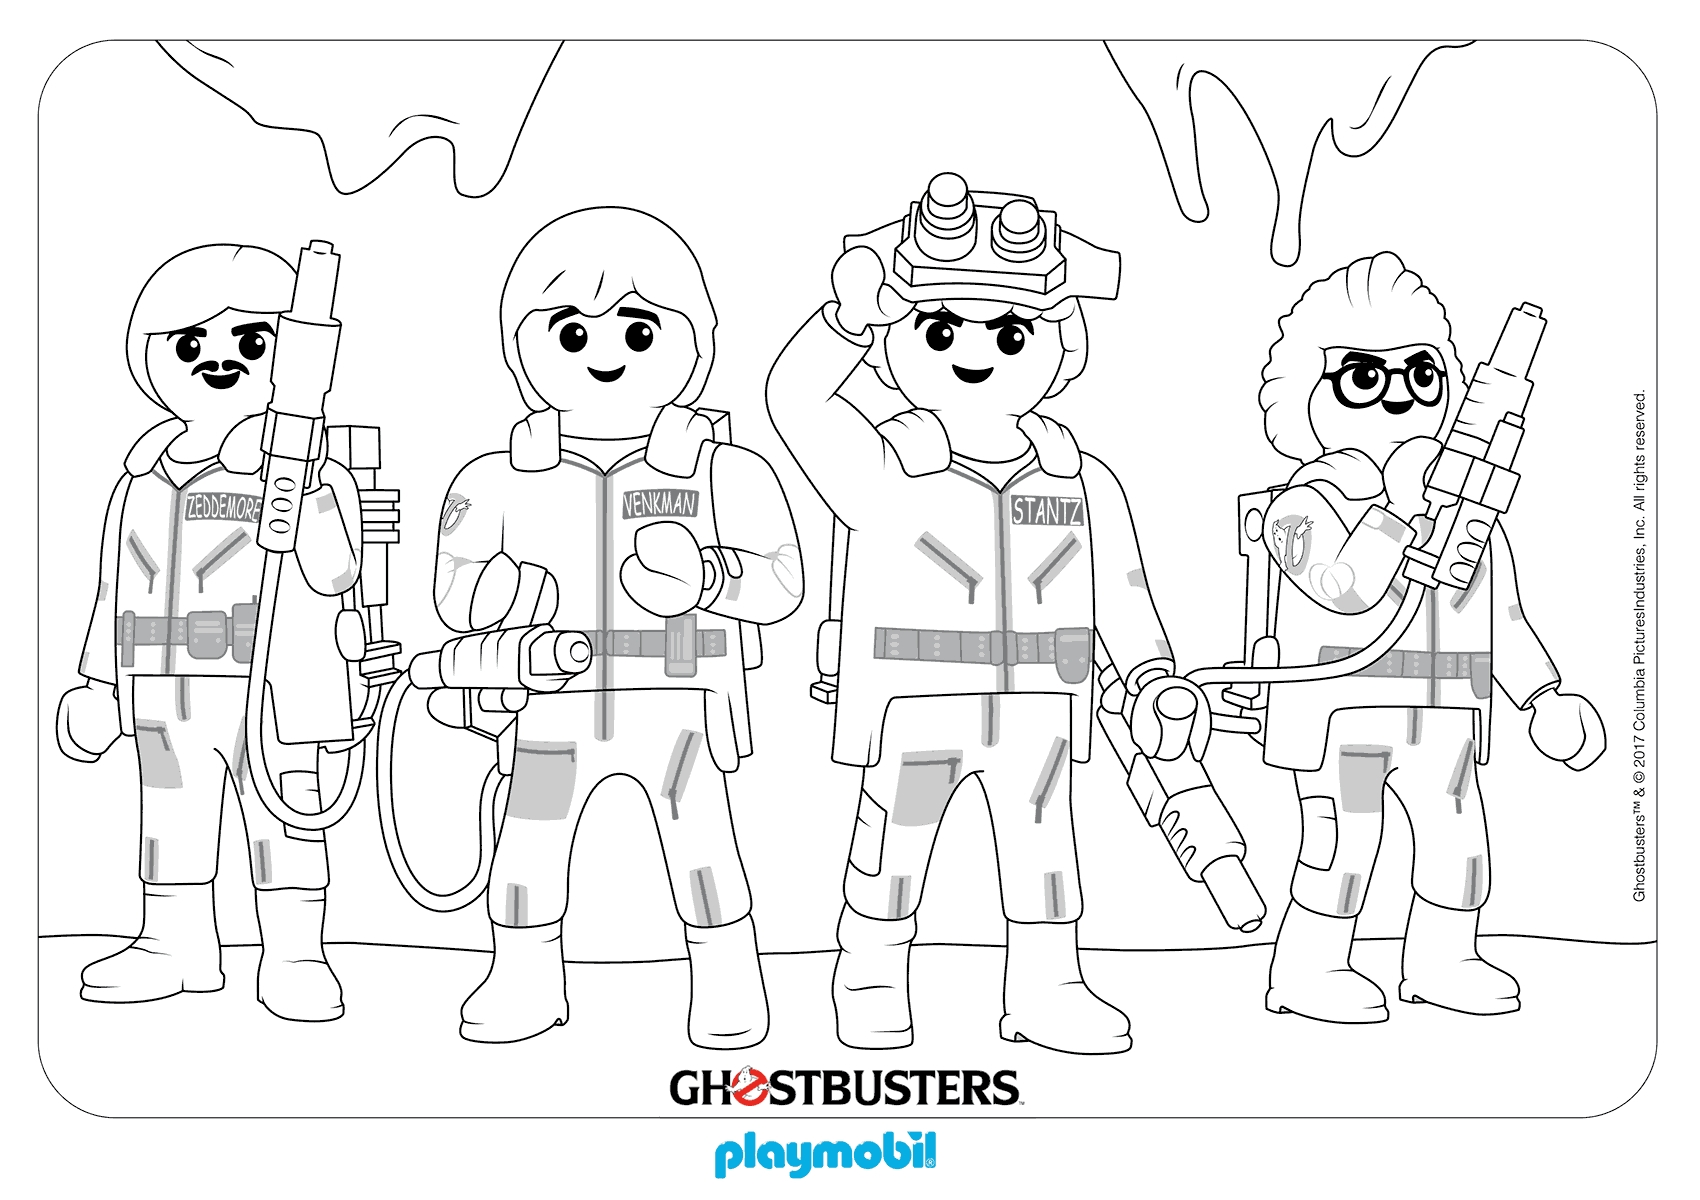 ghostbusters coloring pages - playmobil coloring pages